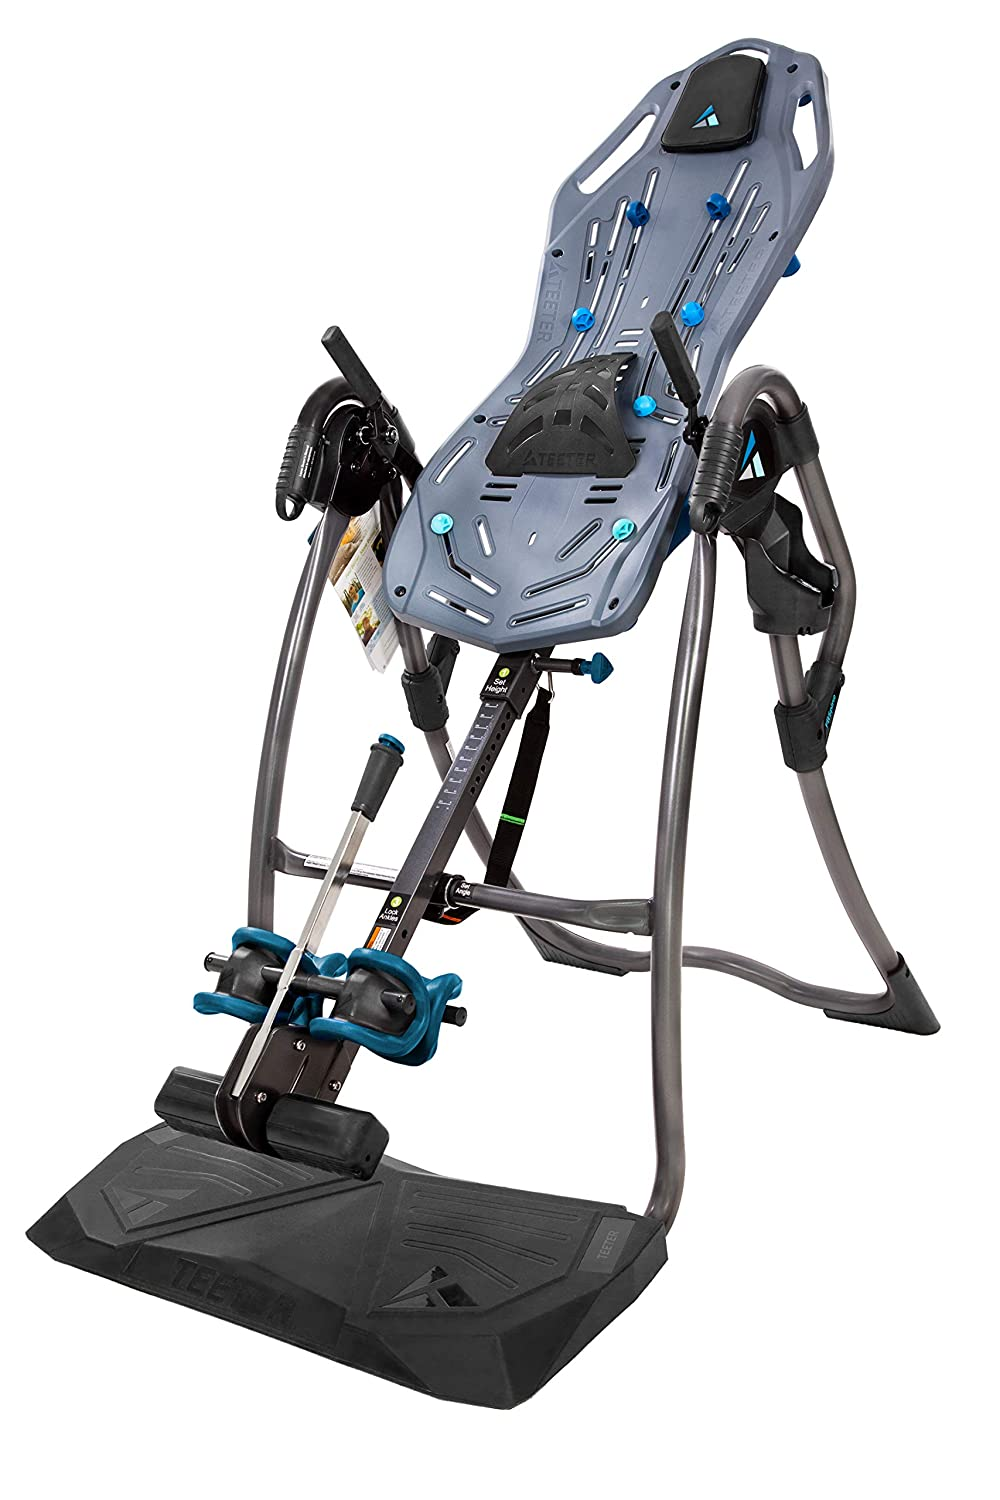 Top 5 Best Cheap Inversion Tables In 2019 Reviews